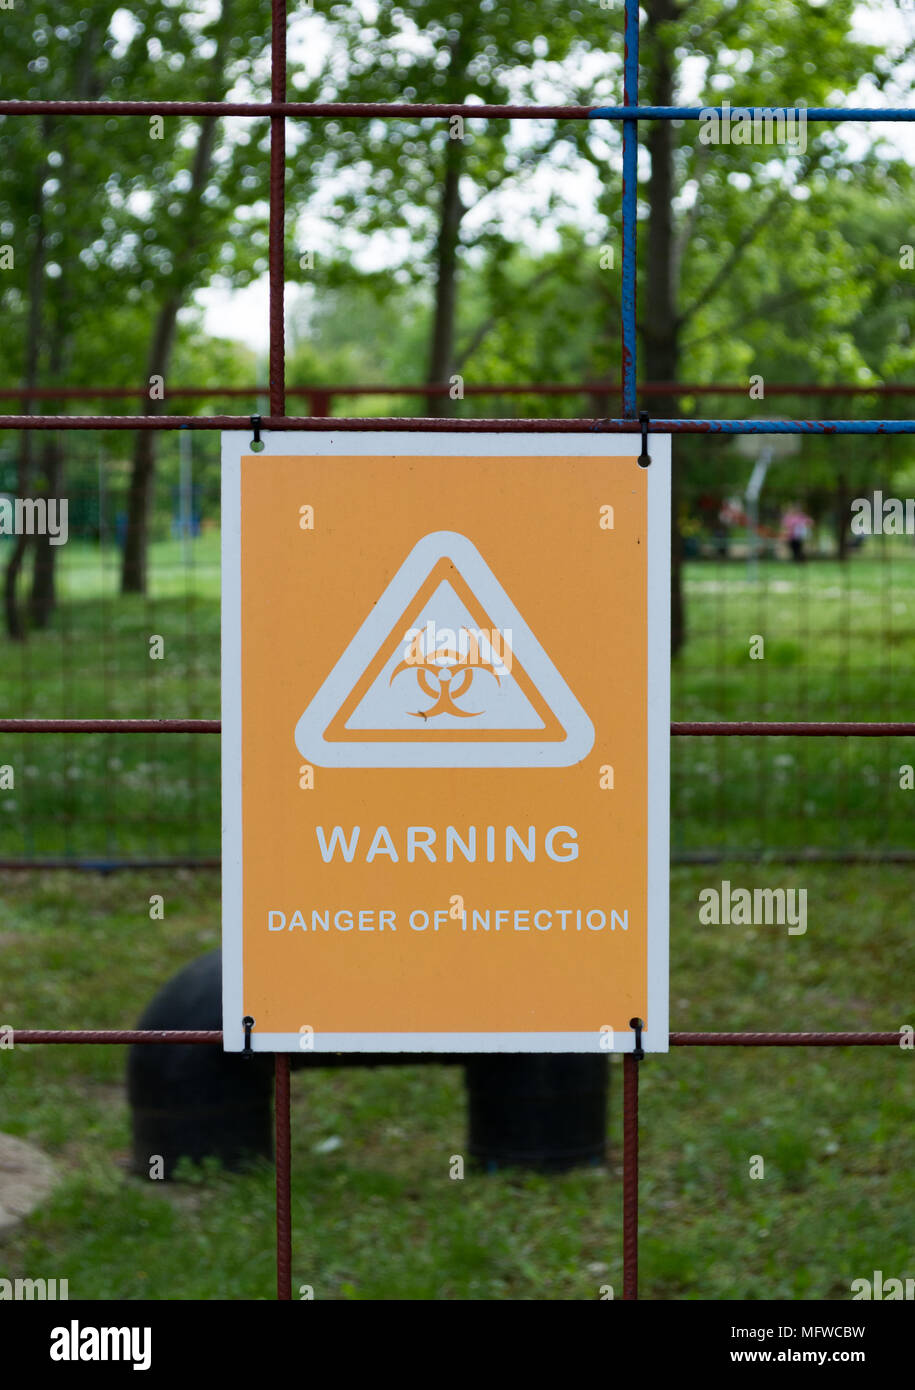 Biohazard sign with text: Warning! Danger of infection. Warning radiation hazard. Warning sign. - Stock Image